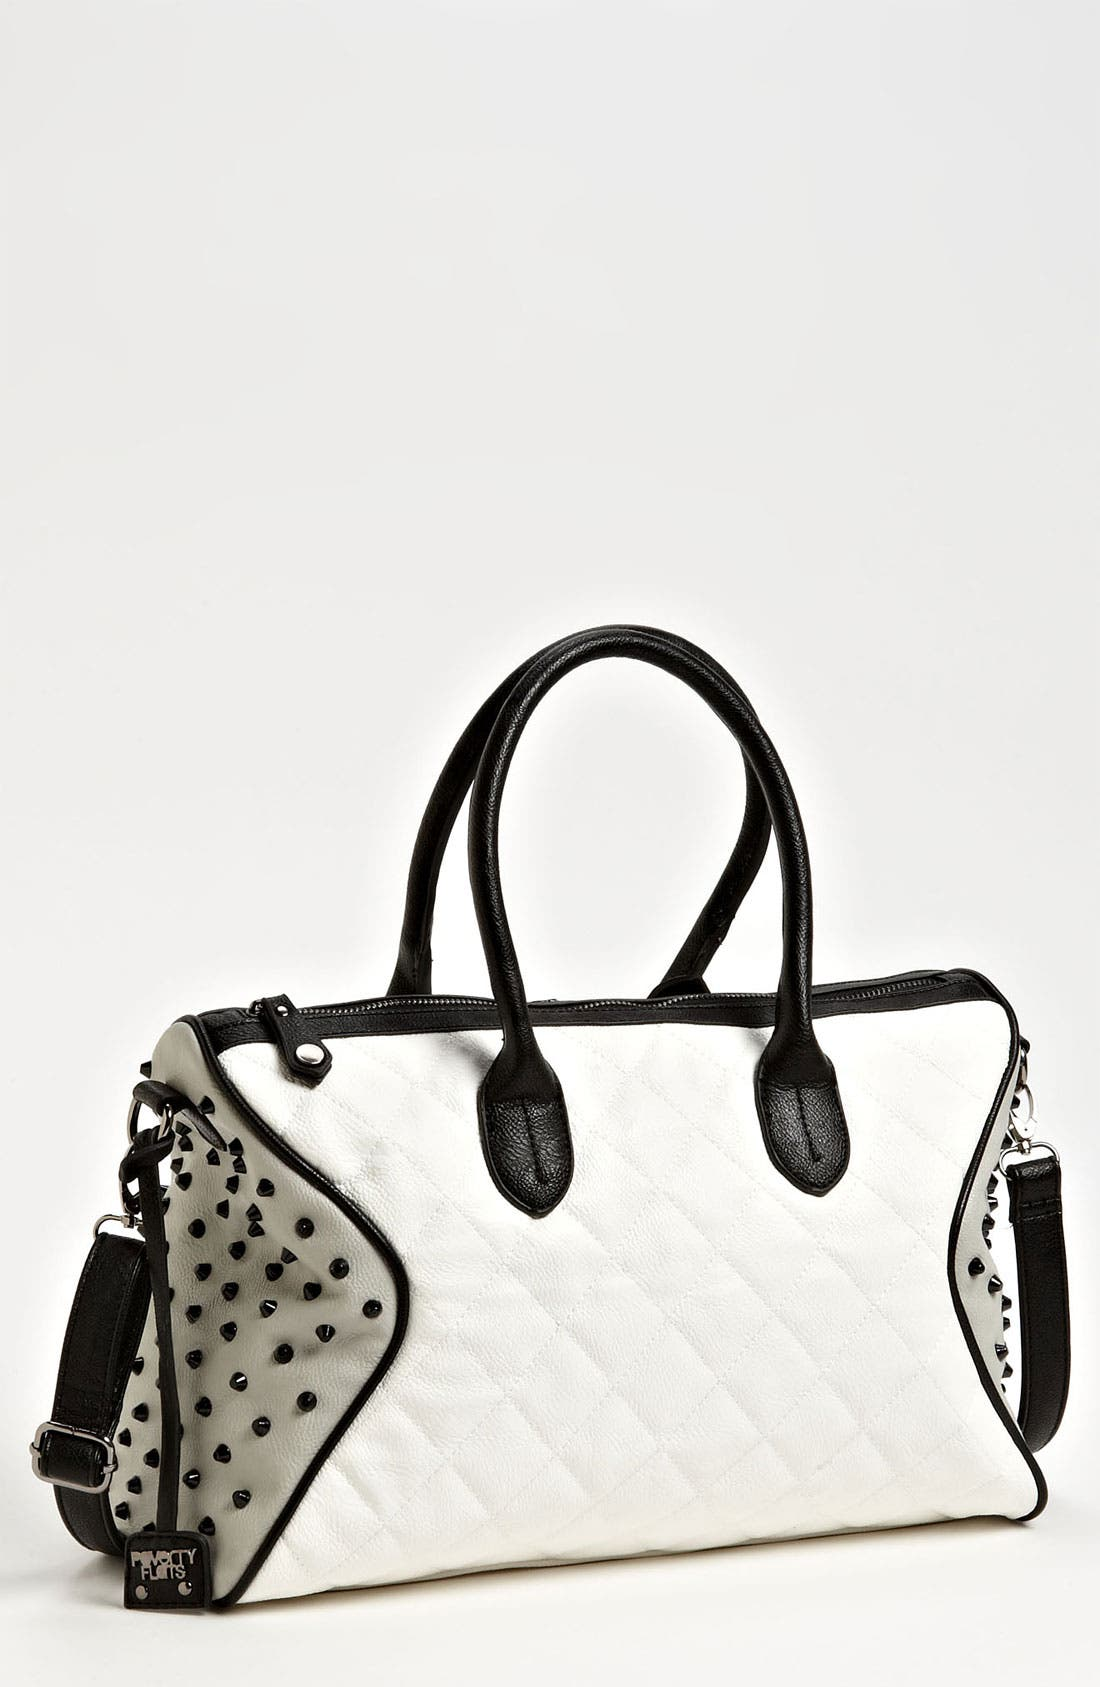 Alternate Image 1 Selected - POVERTY FLATS by rian Studded Satchel